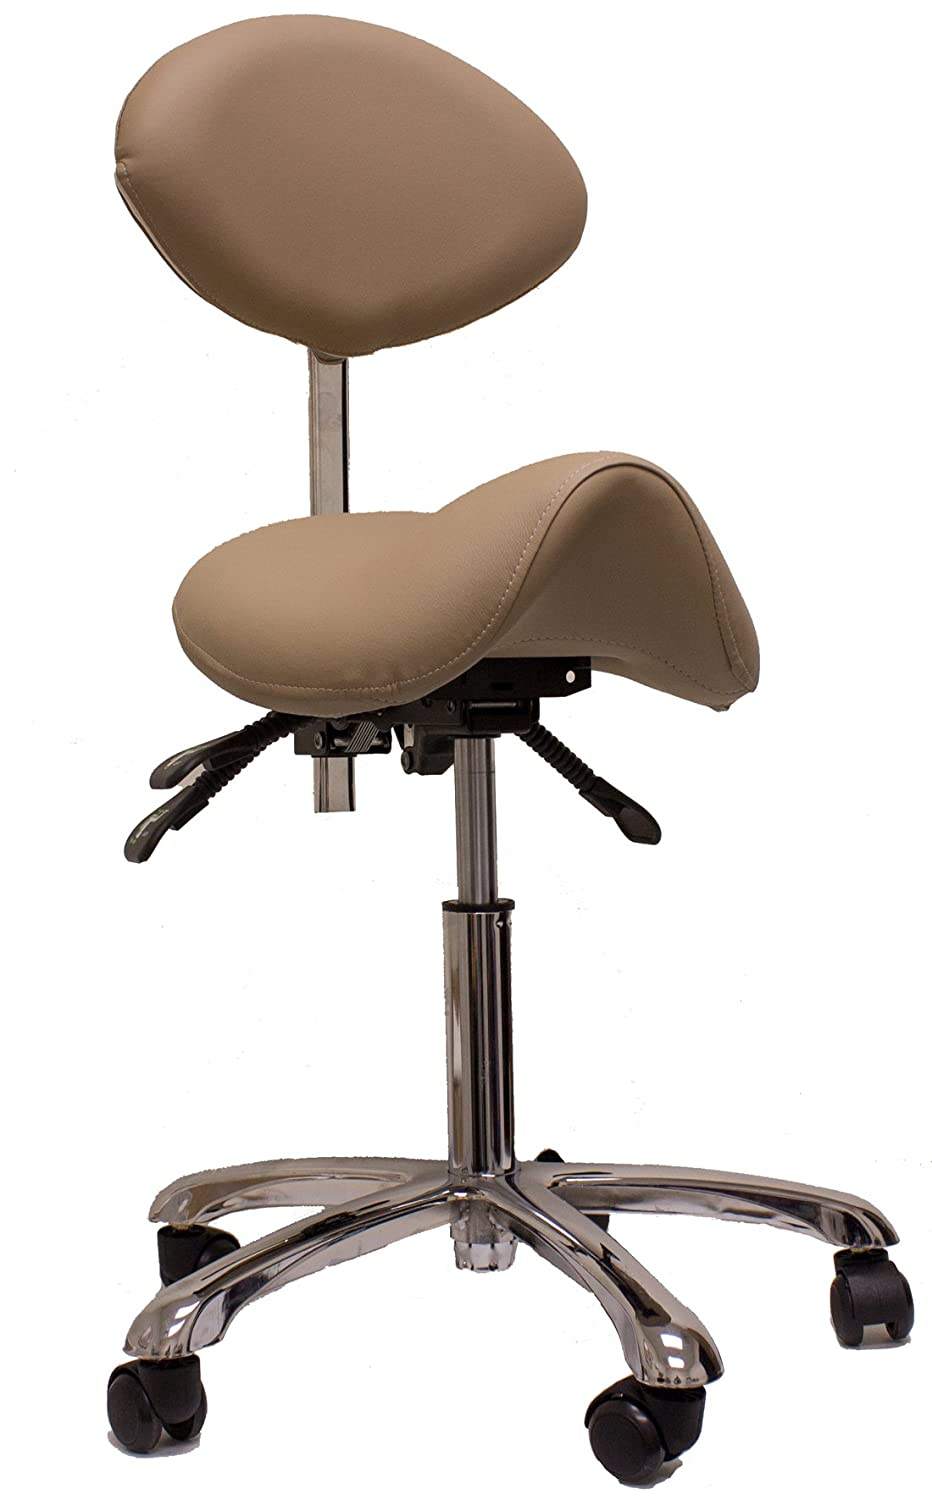 ergonomic chair betterposture saddle chair jobri. Amazon.com: Spa Luxe Rolling Stool With Back Support For Beauty, Exam, Office And Home (CLAY): Health \u0026 Personal Care Ergonomic Chair Betterposture Saddle Jobri